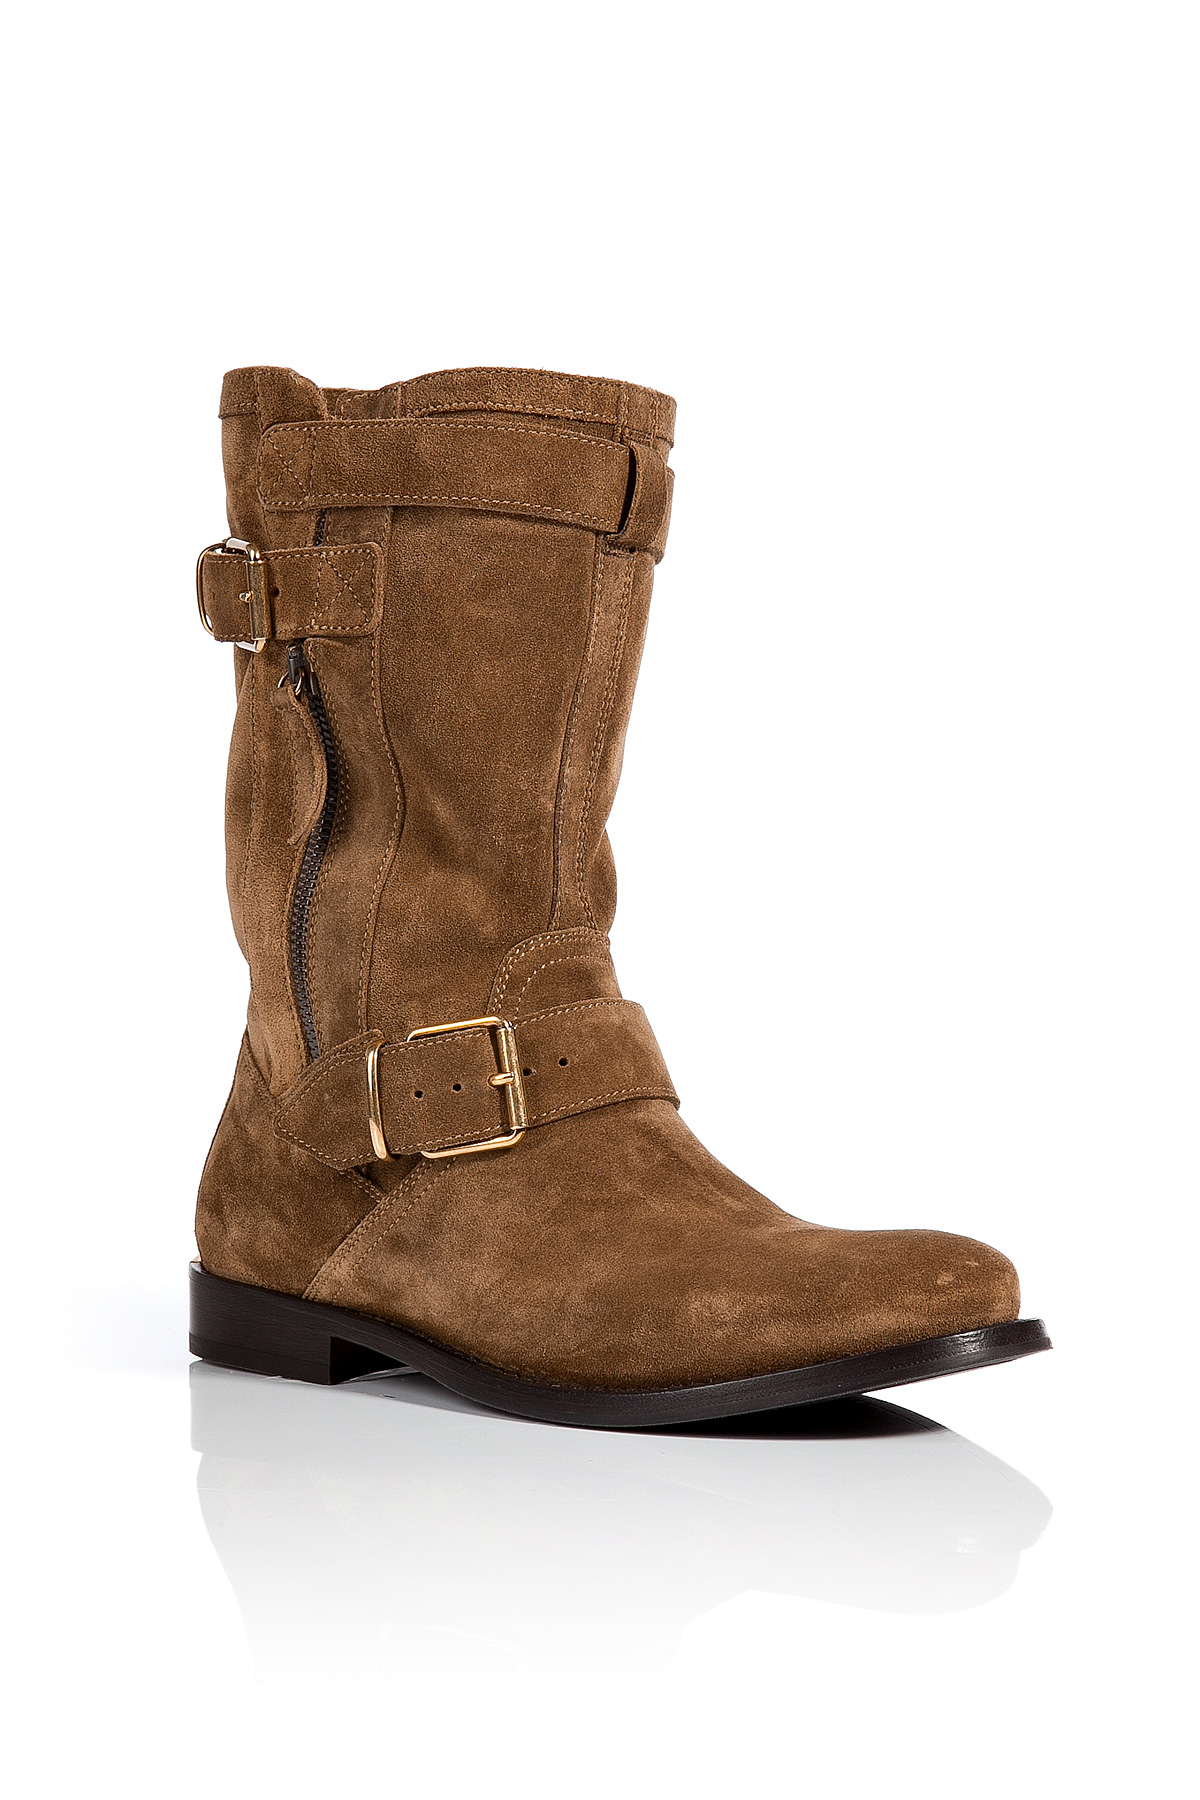 burberry suede buckle detailed grantville boots in brown